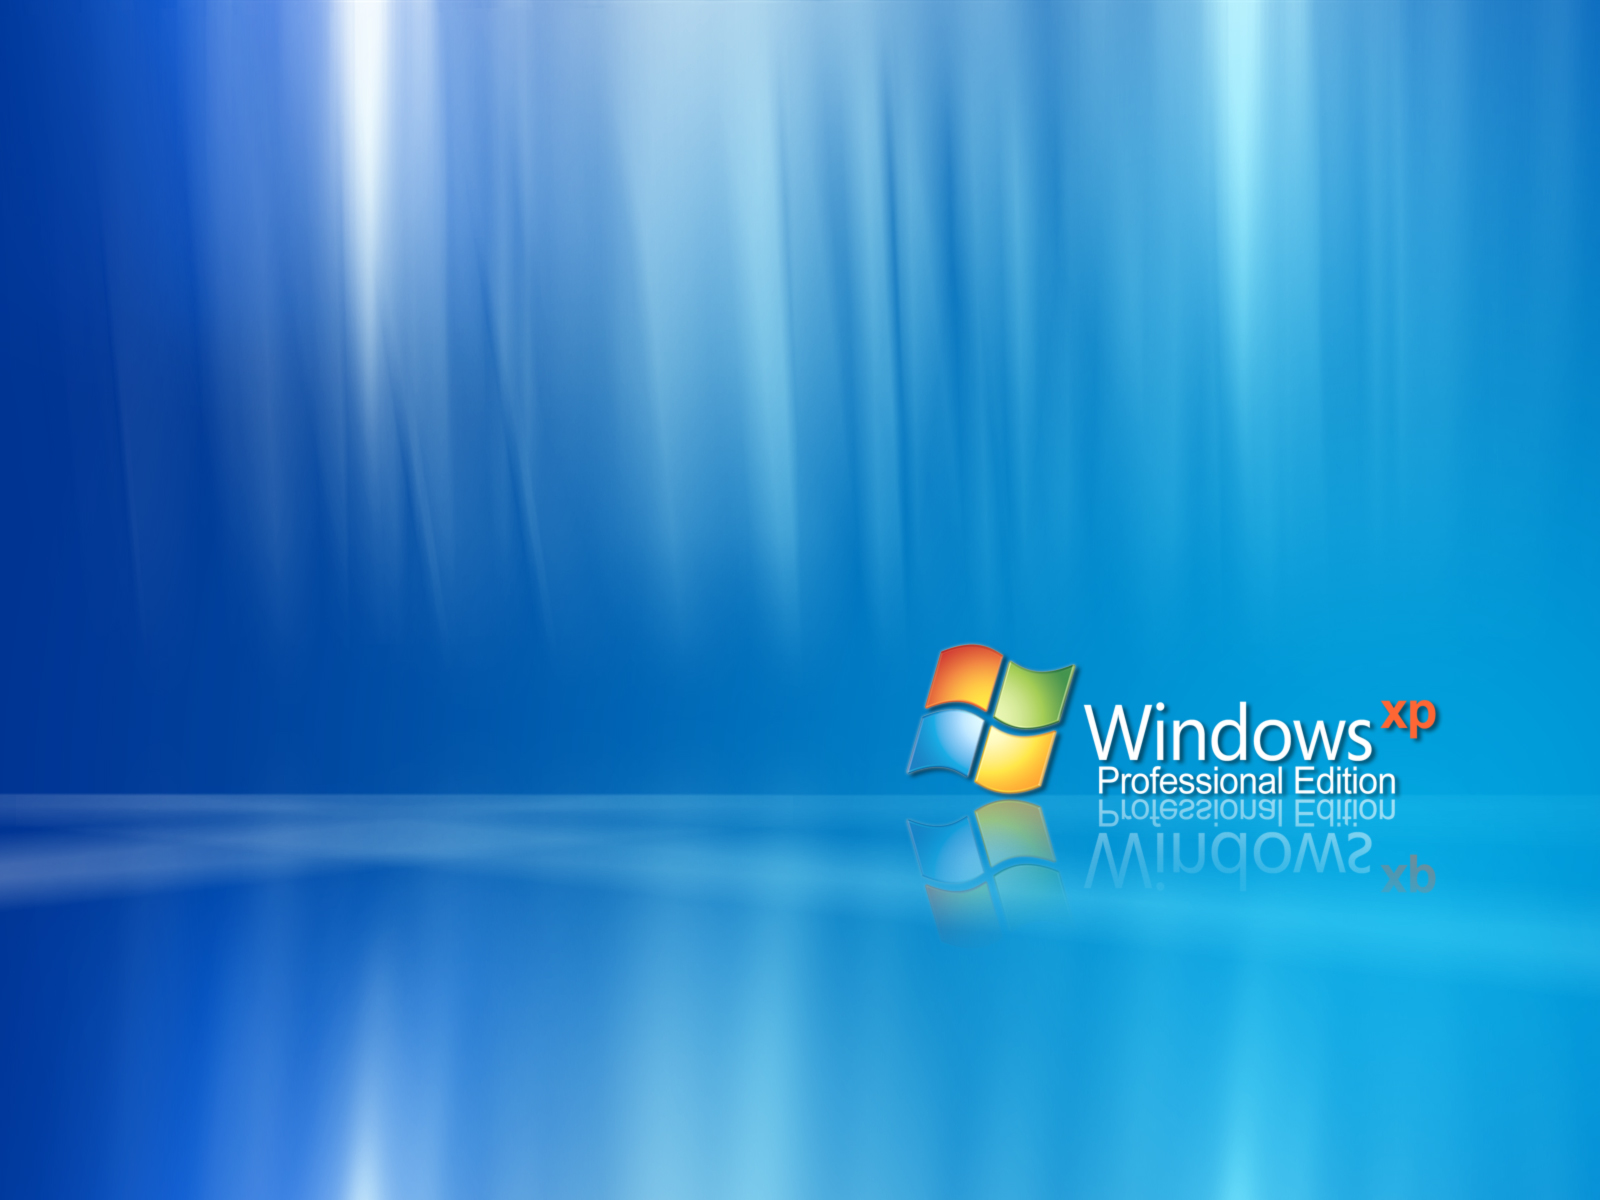 http://4.bp.blogspot.com/_f7ZzEcs7mzs/S9LyxReyhVI/AAAAAAAAAKQ/tZLAejFsk7o/s1600/windows-xp-blue-wallpaper.jpg